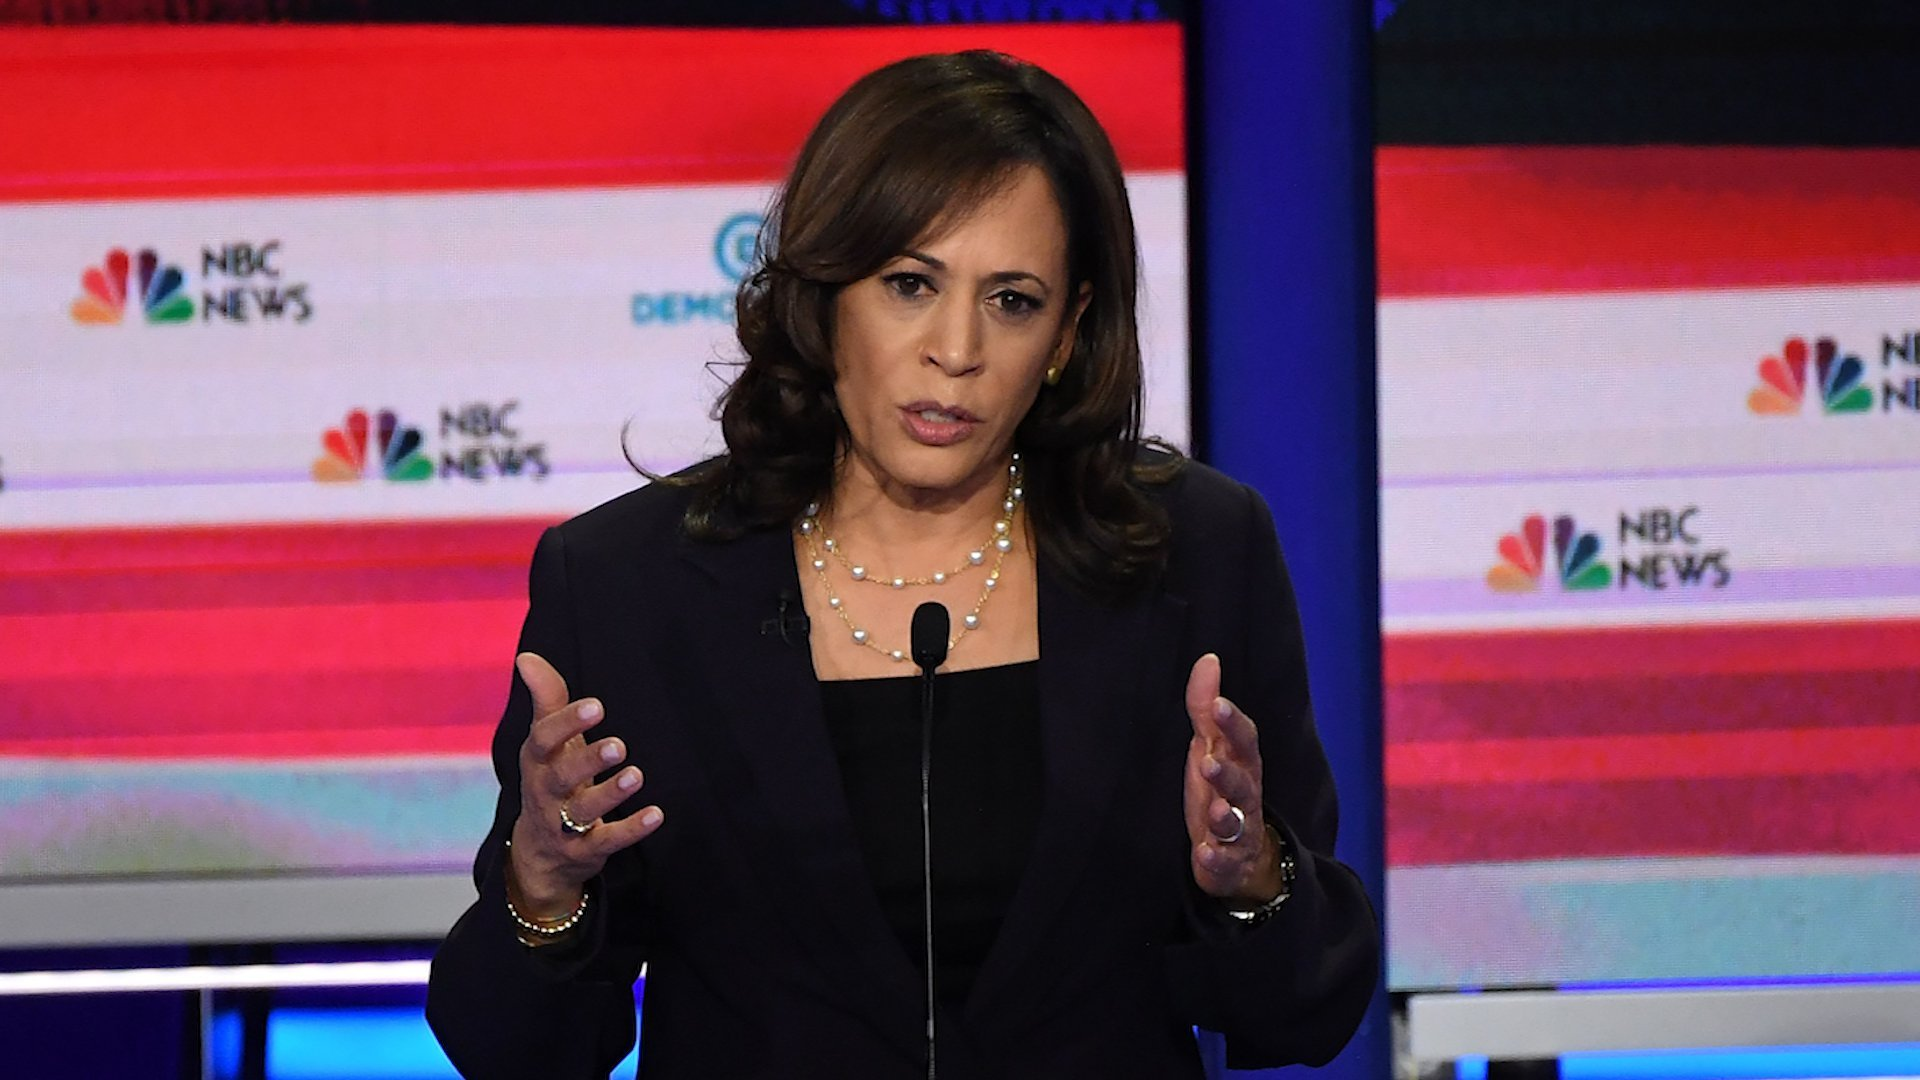 Kamala Harris on Trump's racist attack: He 'needs to go back where he came from and leave that office'